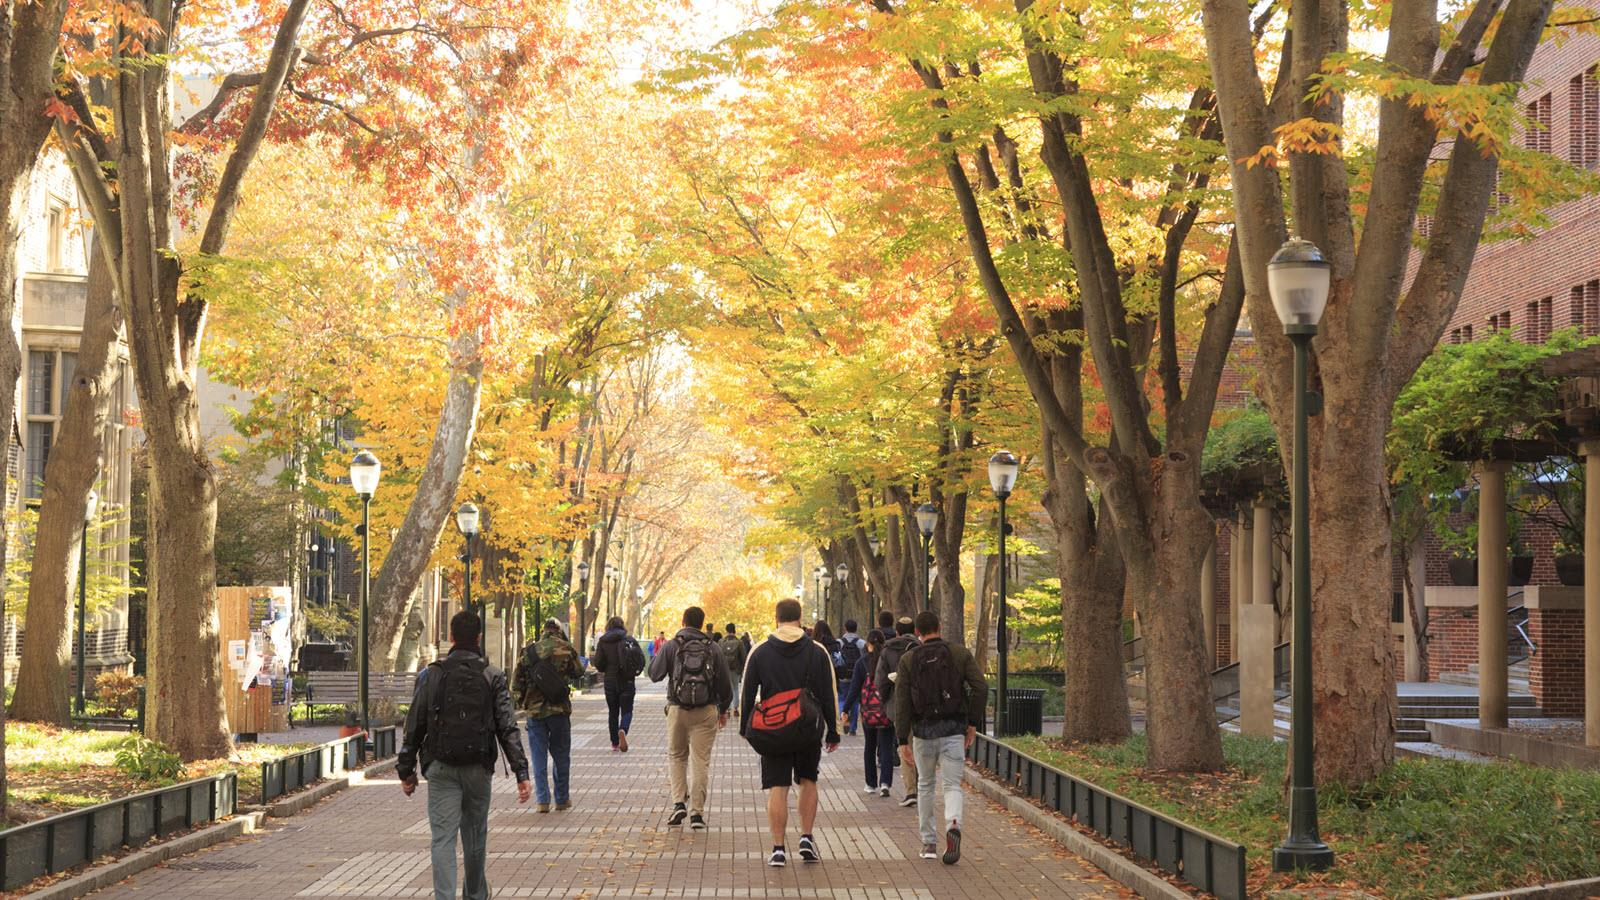 fall campus scene with students walking under trees